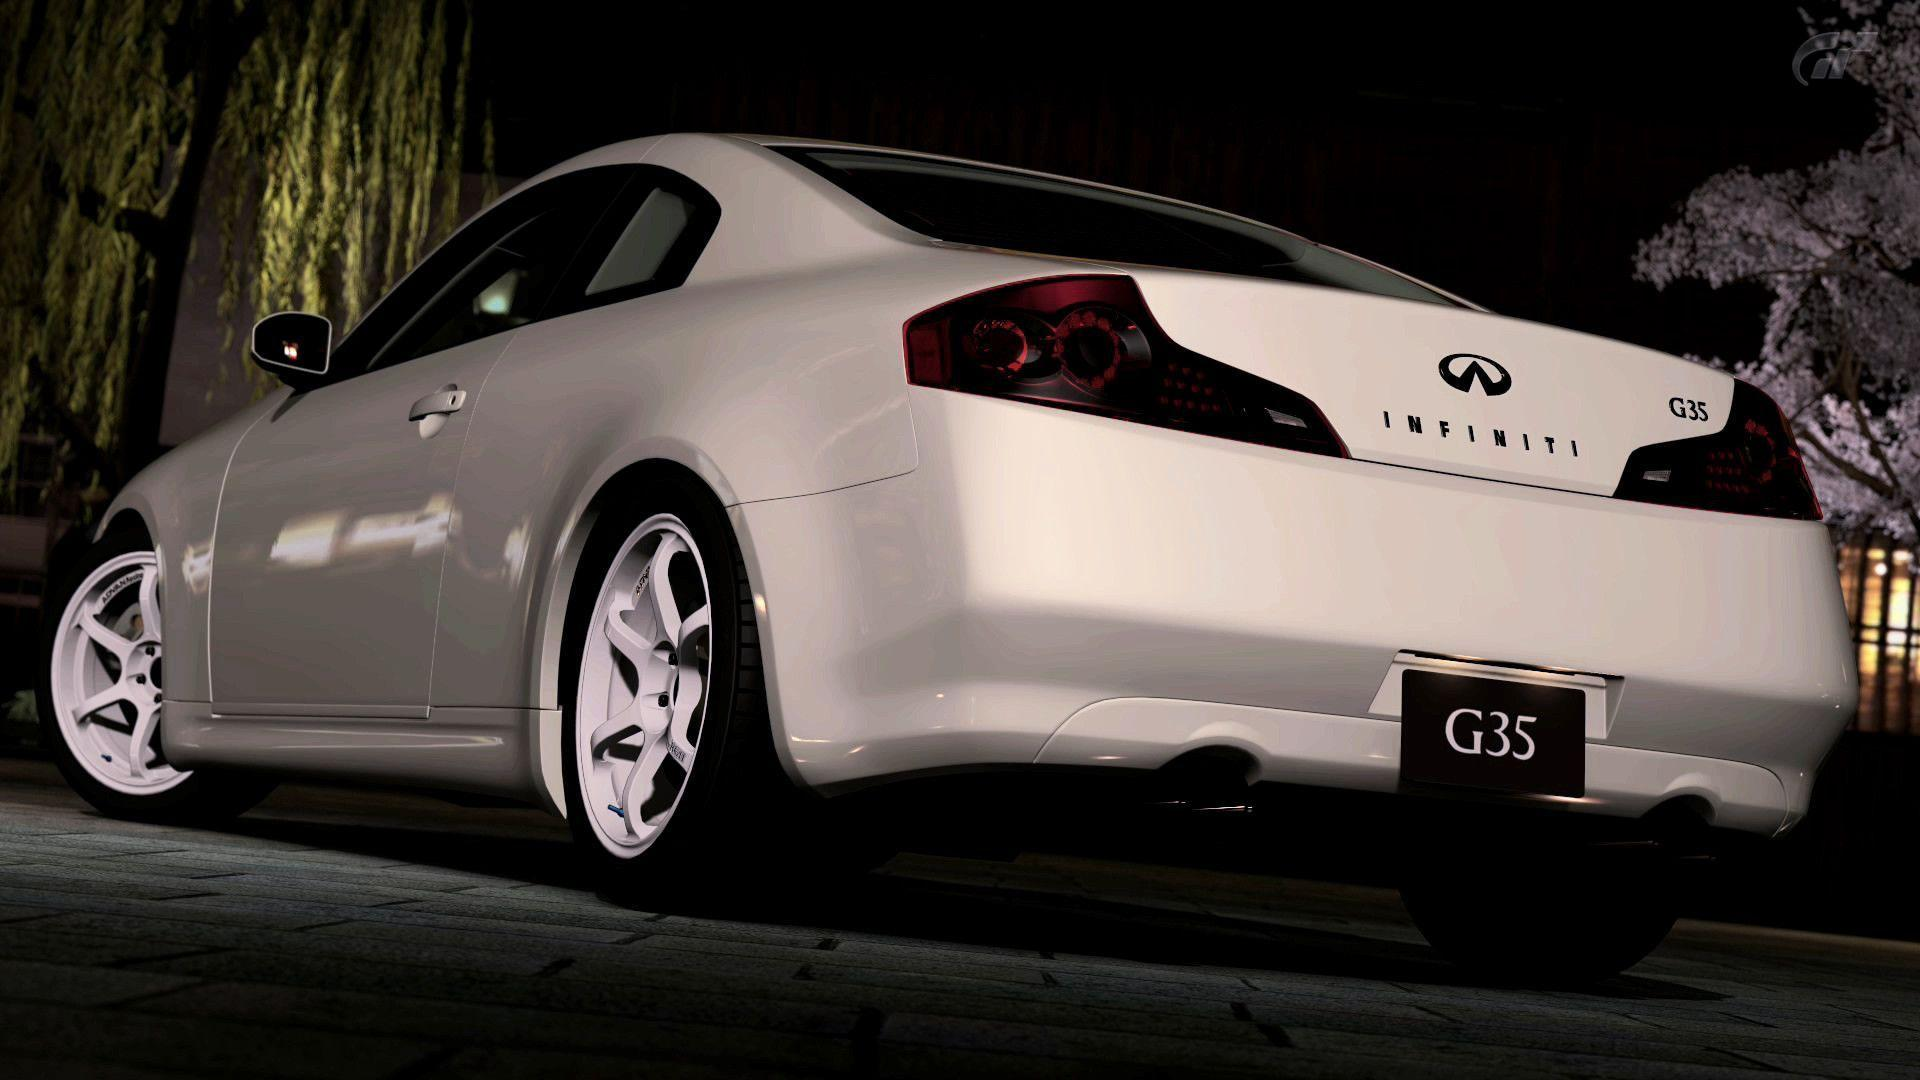 2006 Infiniti G35 Sport Coupe (Gran Turismo 5) by Vertualissimo on ...